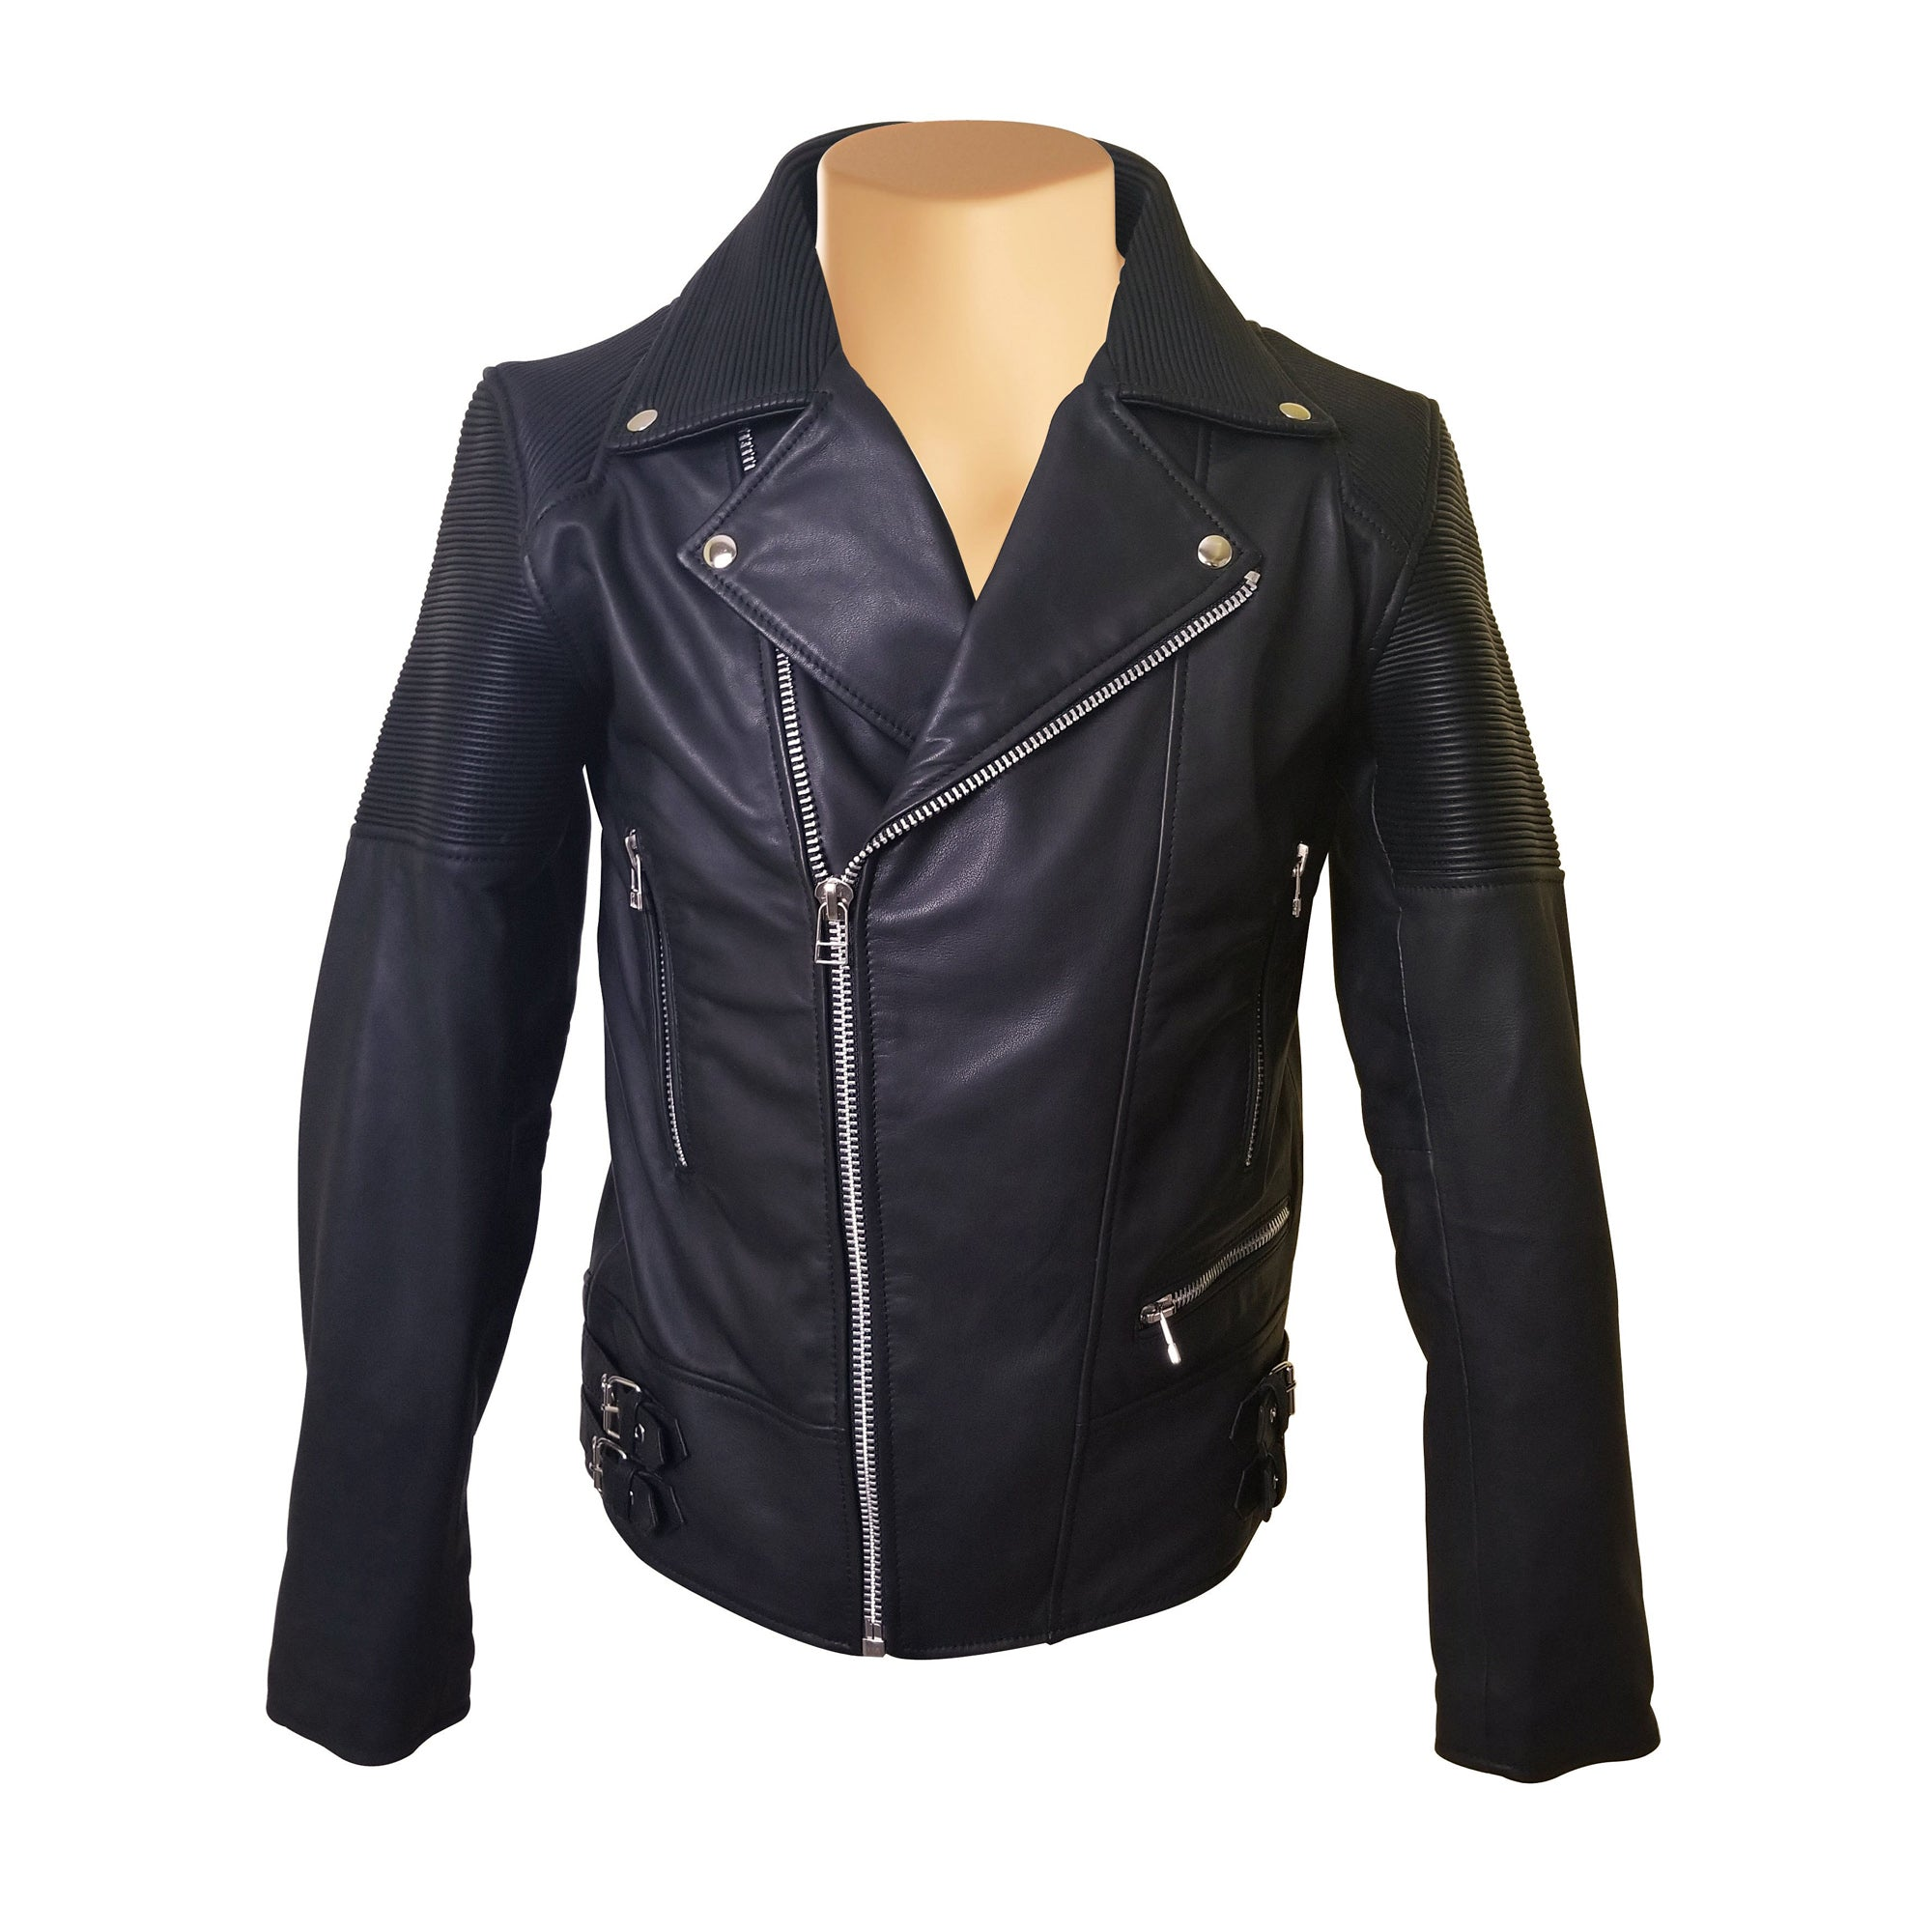 Brett's biker style leather jacket with stretchy leather